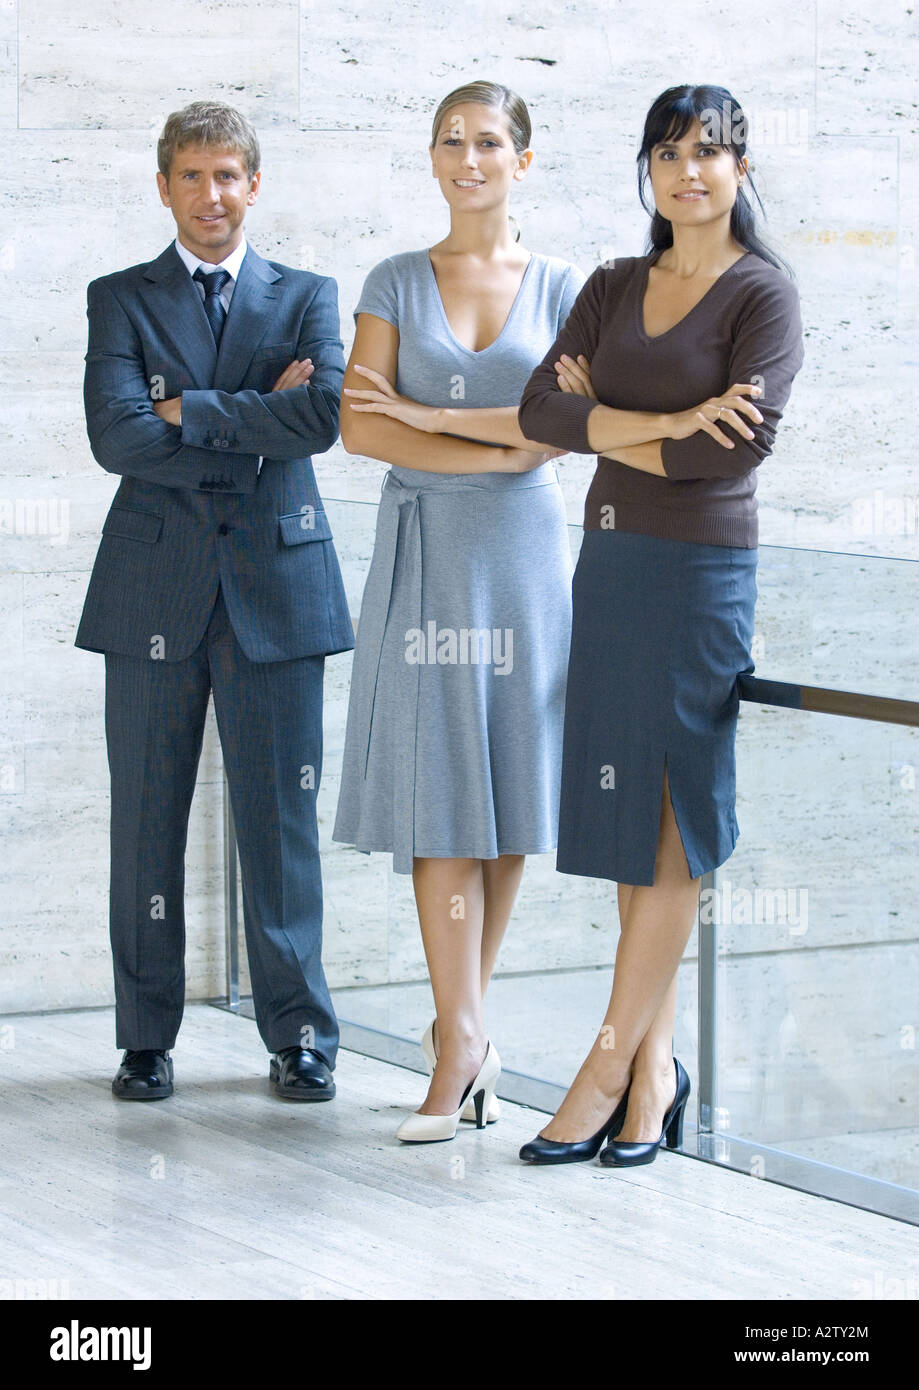 Three business executives standing with arms folded, full length portrait - Stock Image